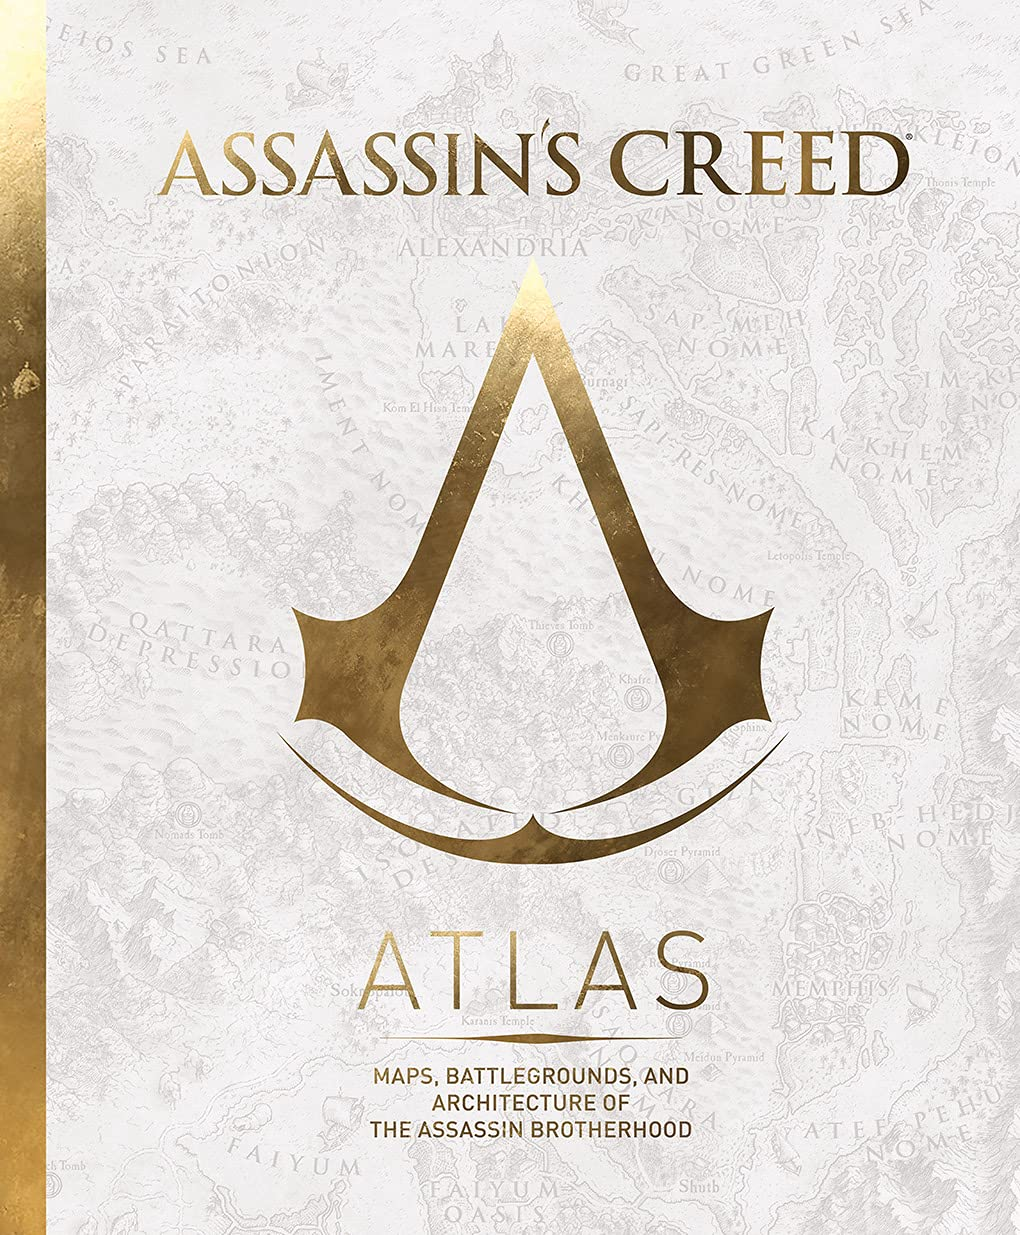 Assassin's Creed: Atlas